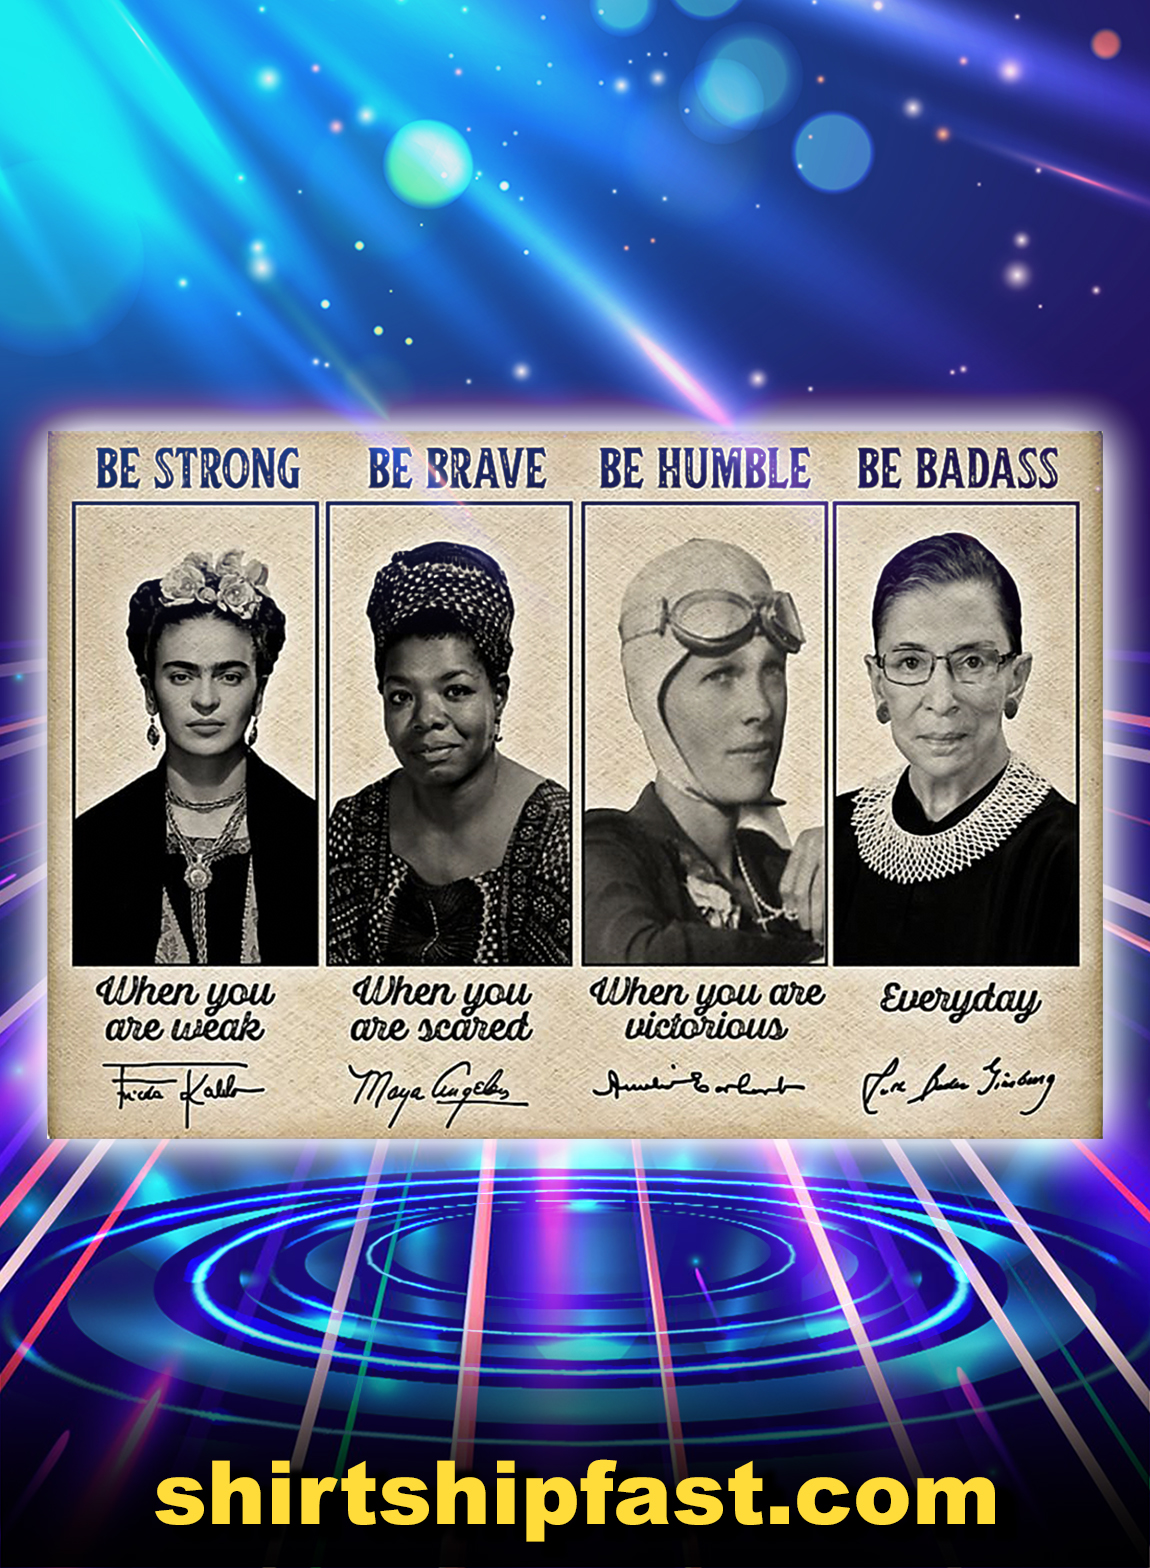 Famous feminists signature be strong be brave be humble be badass poster - A2